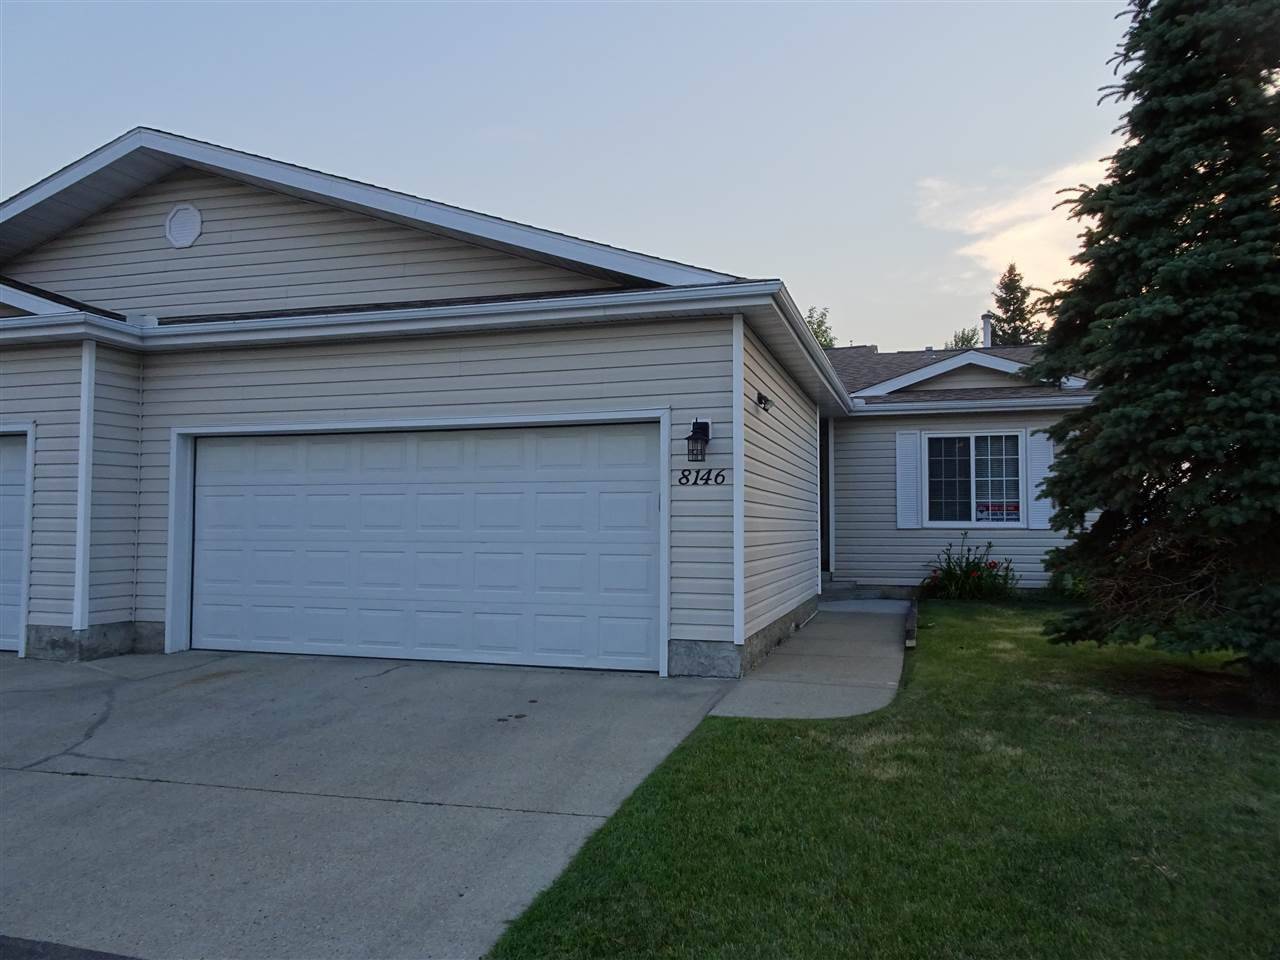 Main Photo: 8146 27 Avenue in Edmonton: Zone 29 House Half Duplex for sale : MLS® # E4059201